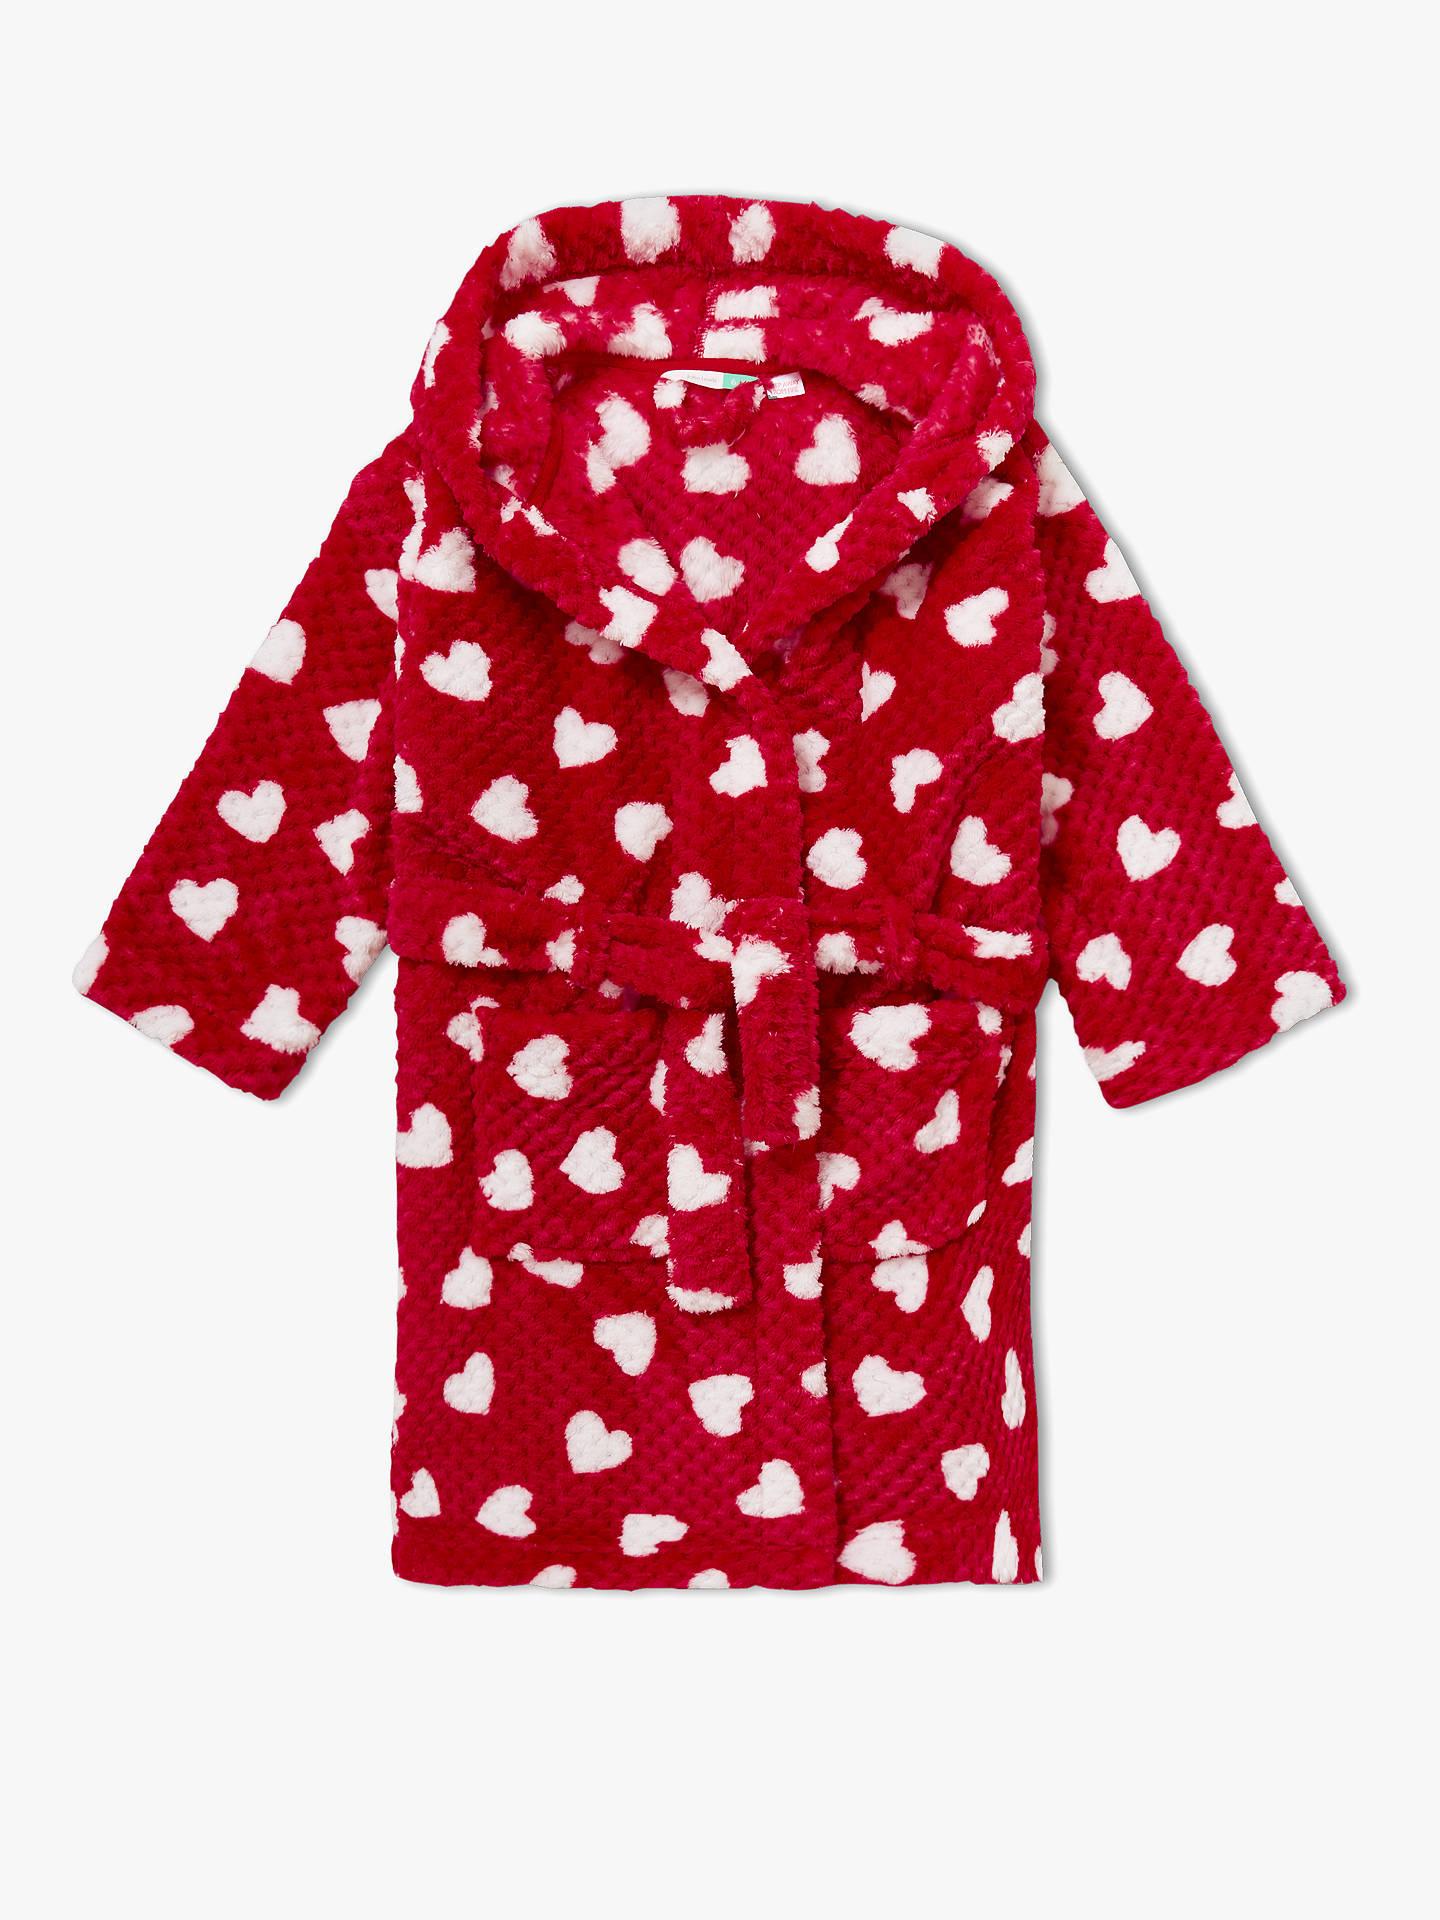 BuyJohn Lewis & Partners Girls' Heart Print Robe, Red, 10 years Online at johnlewis.com